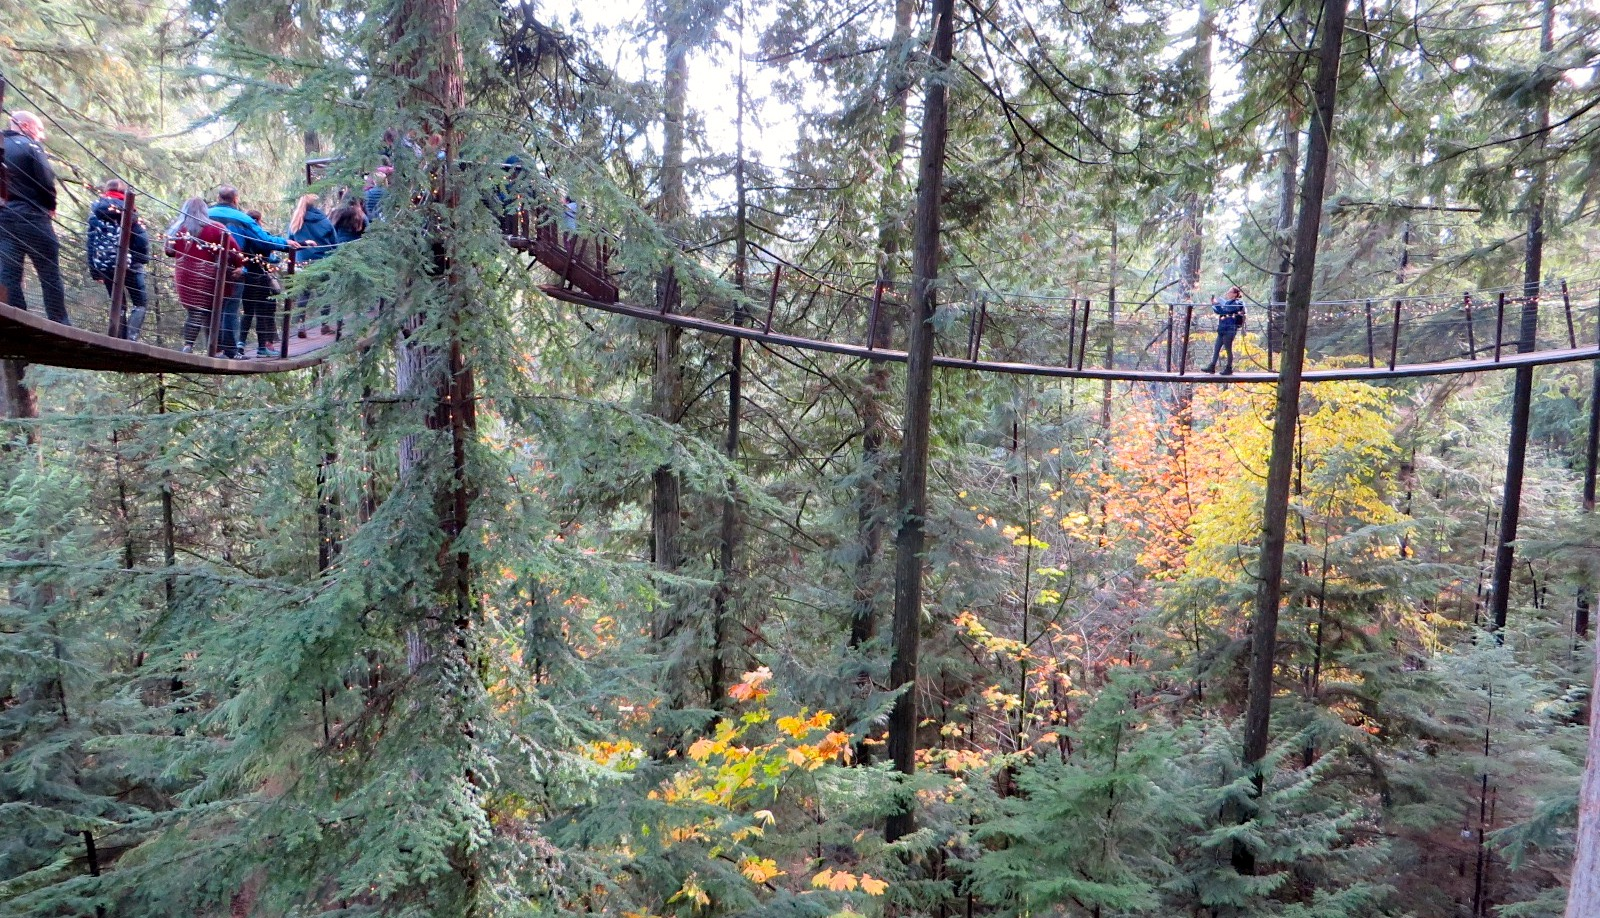 A walkway high up in the treetops at Capilano Suspension Bridge Park